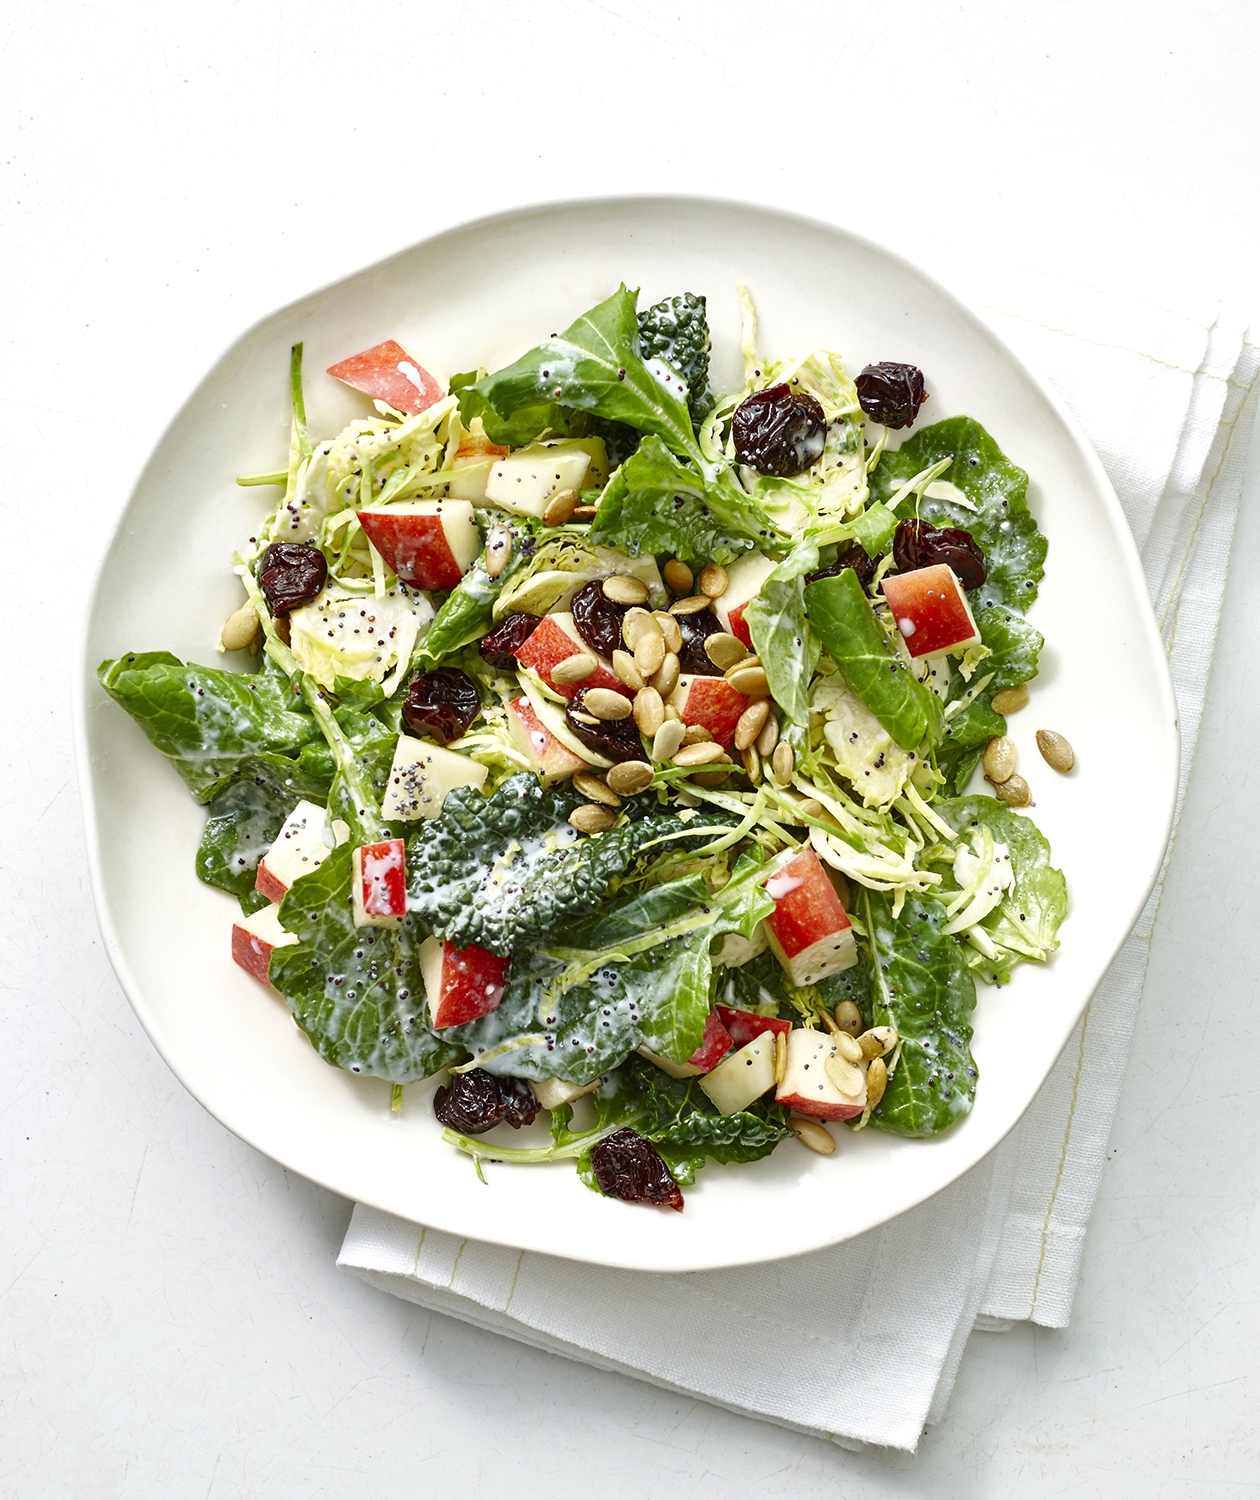 Shaved Brussels Sprouts and Kale Salad with Poppyseed Dressing